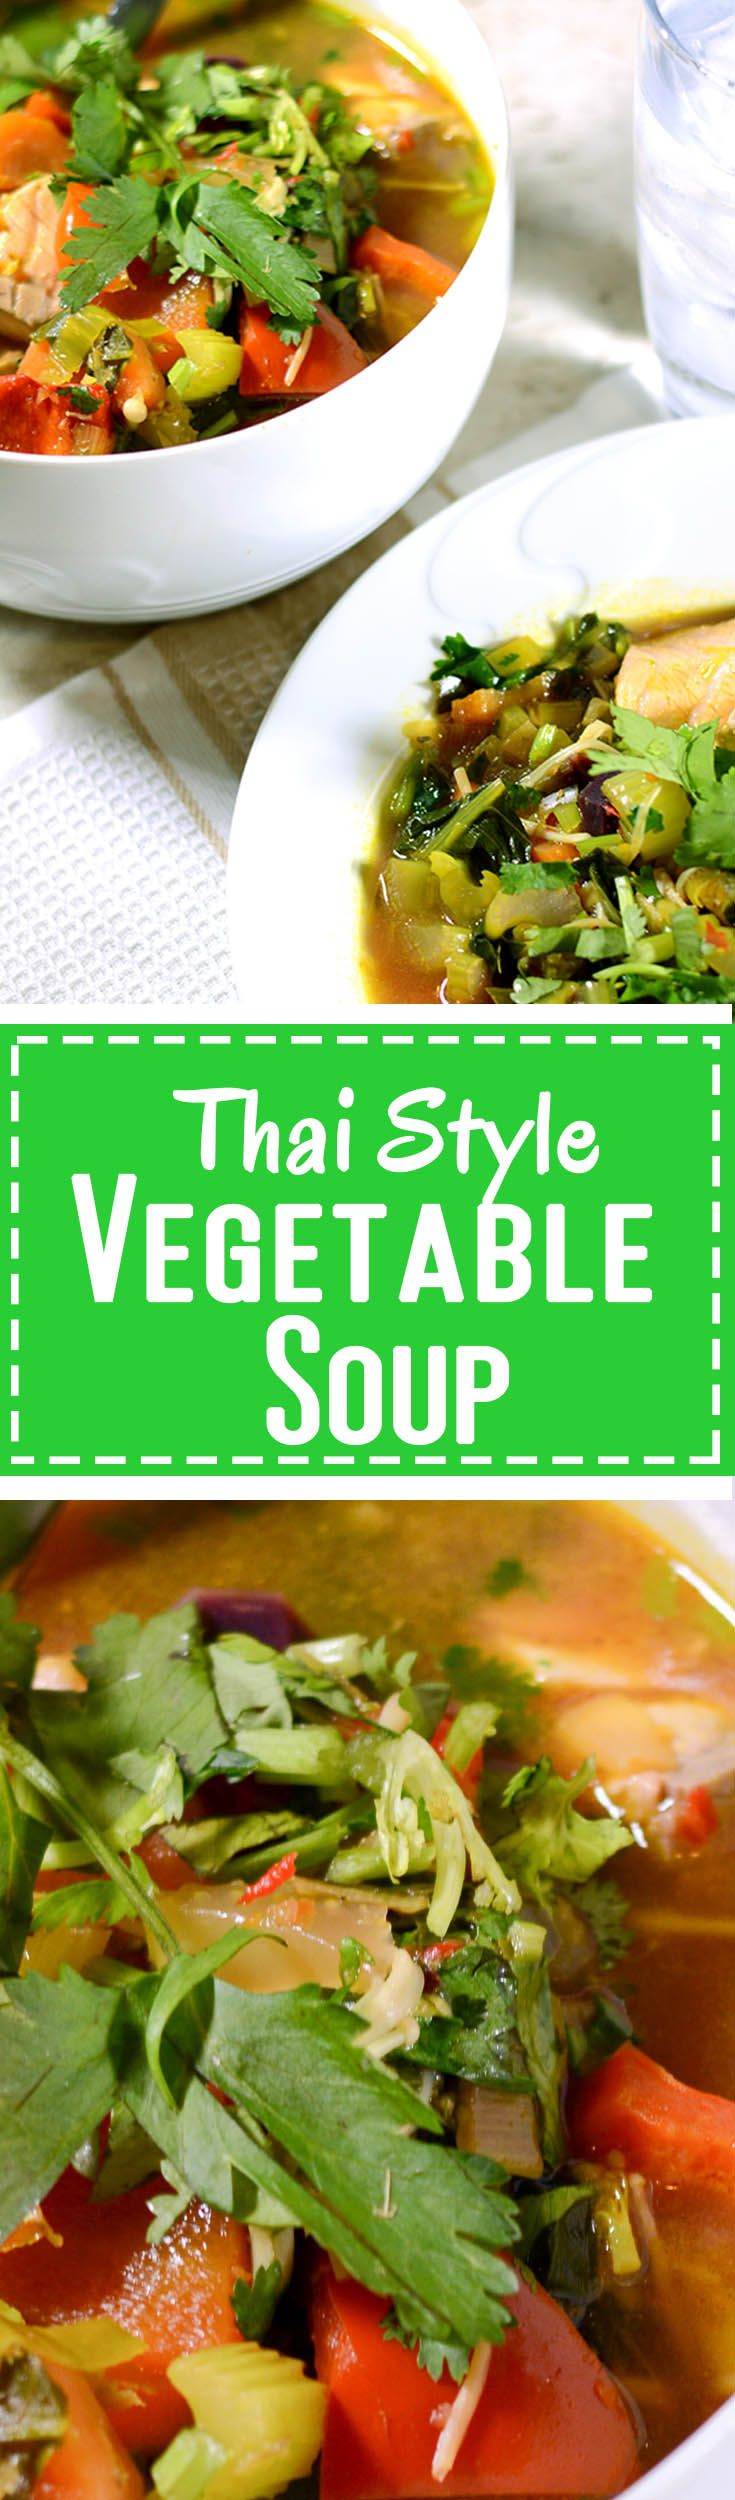 Thai Style Vegetable Soup - aromatic Asian flavours from the ginger, kaffir lime, lemongrass & garlic. Great with chicken, salmon or beans www.healthinsidesuccess.com